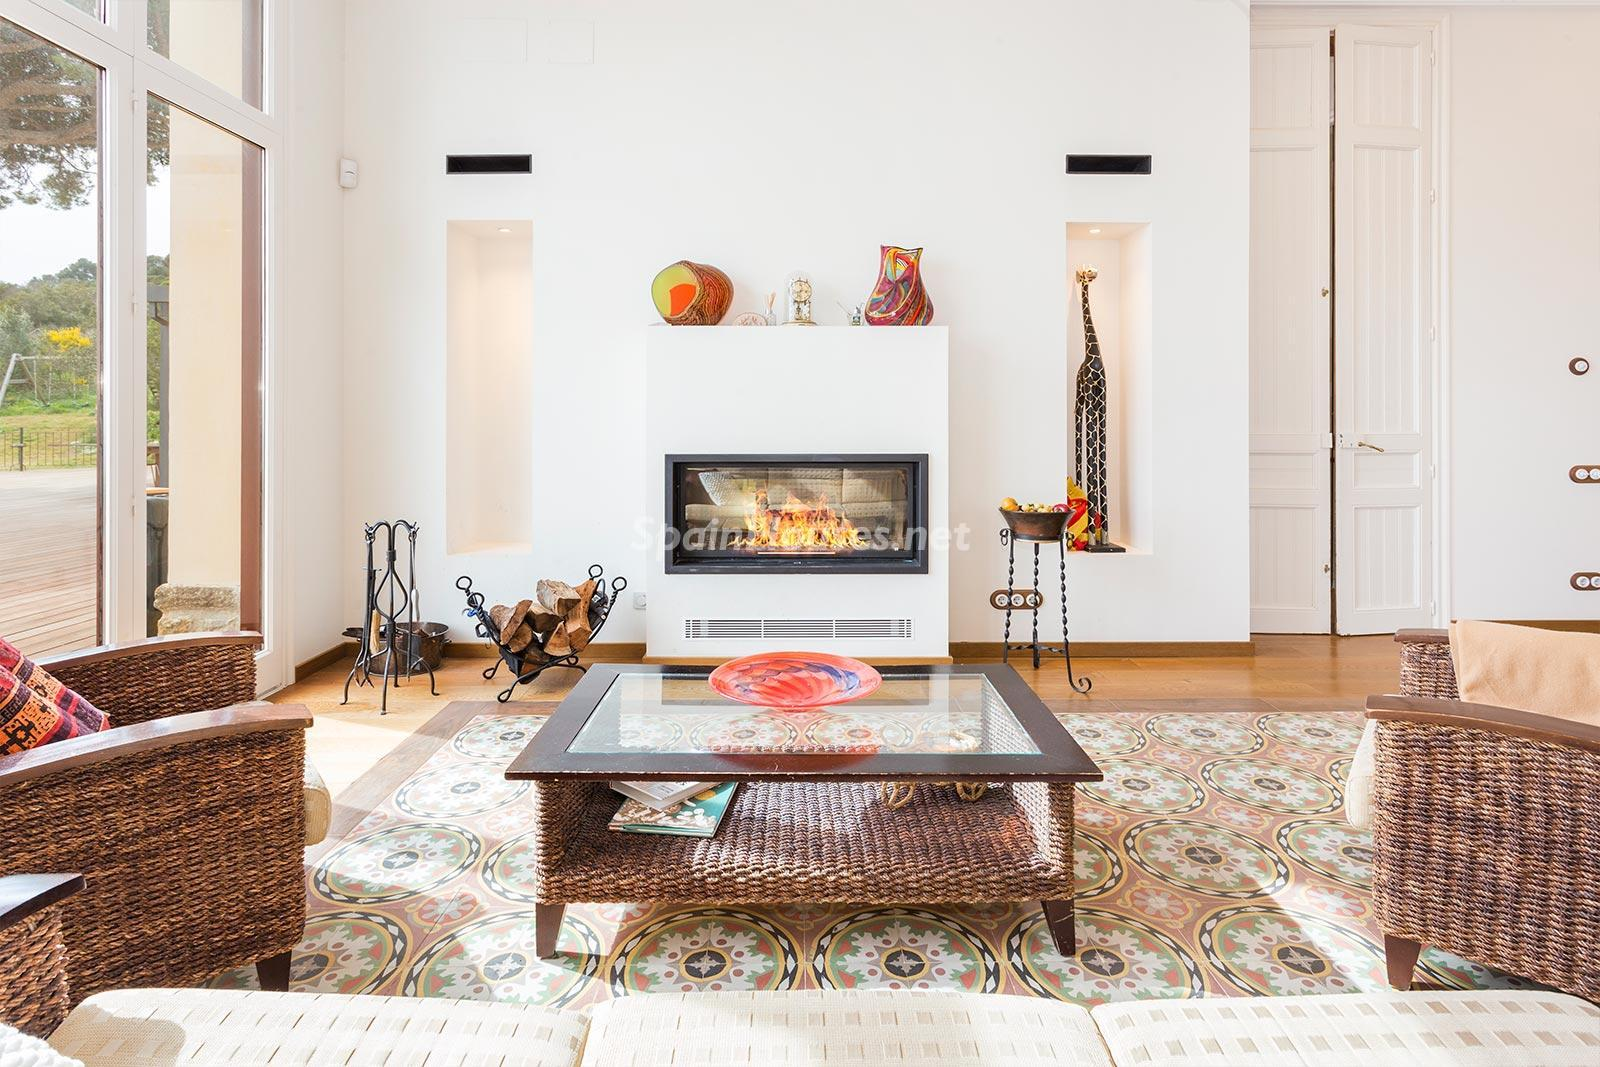 6. House for sale in Sarrià Barcelona - Exclusive 8 Bedroom Villa For Sale in Sarrià, Barcelona